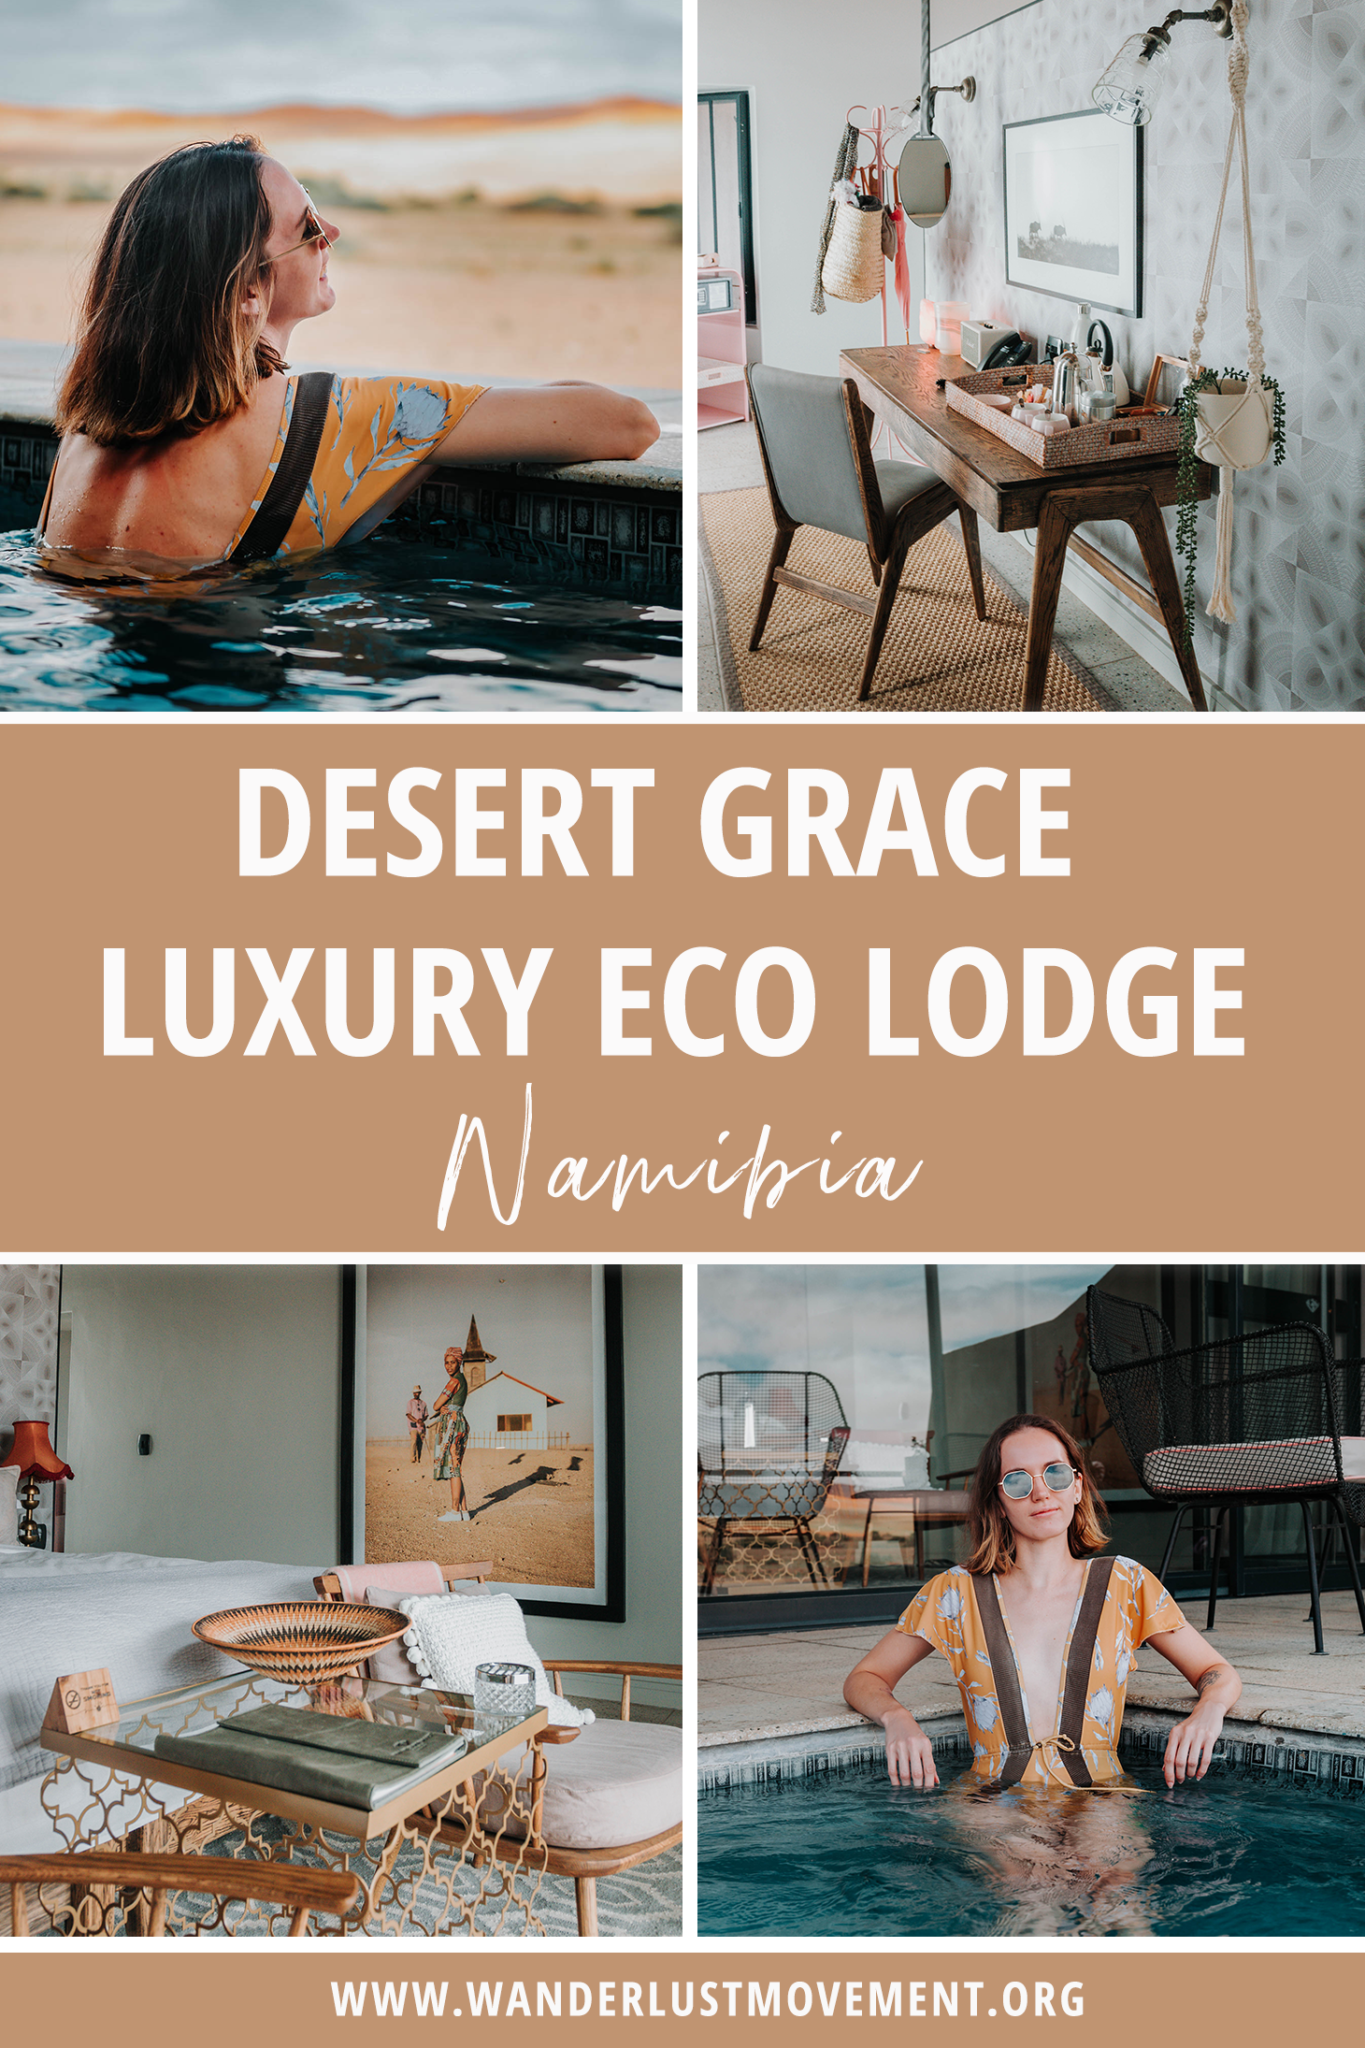 Staying at Desert Grace: A Top Luxury Eco Lodge in Namibia